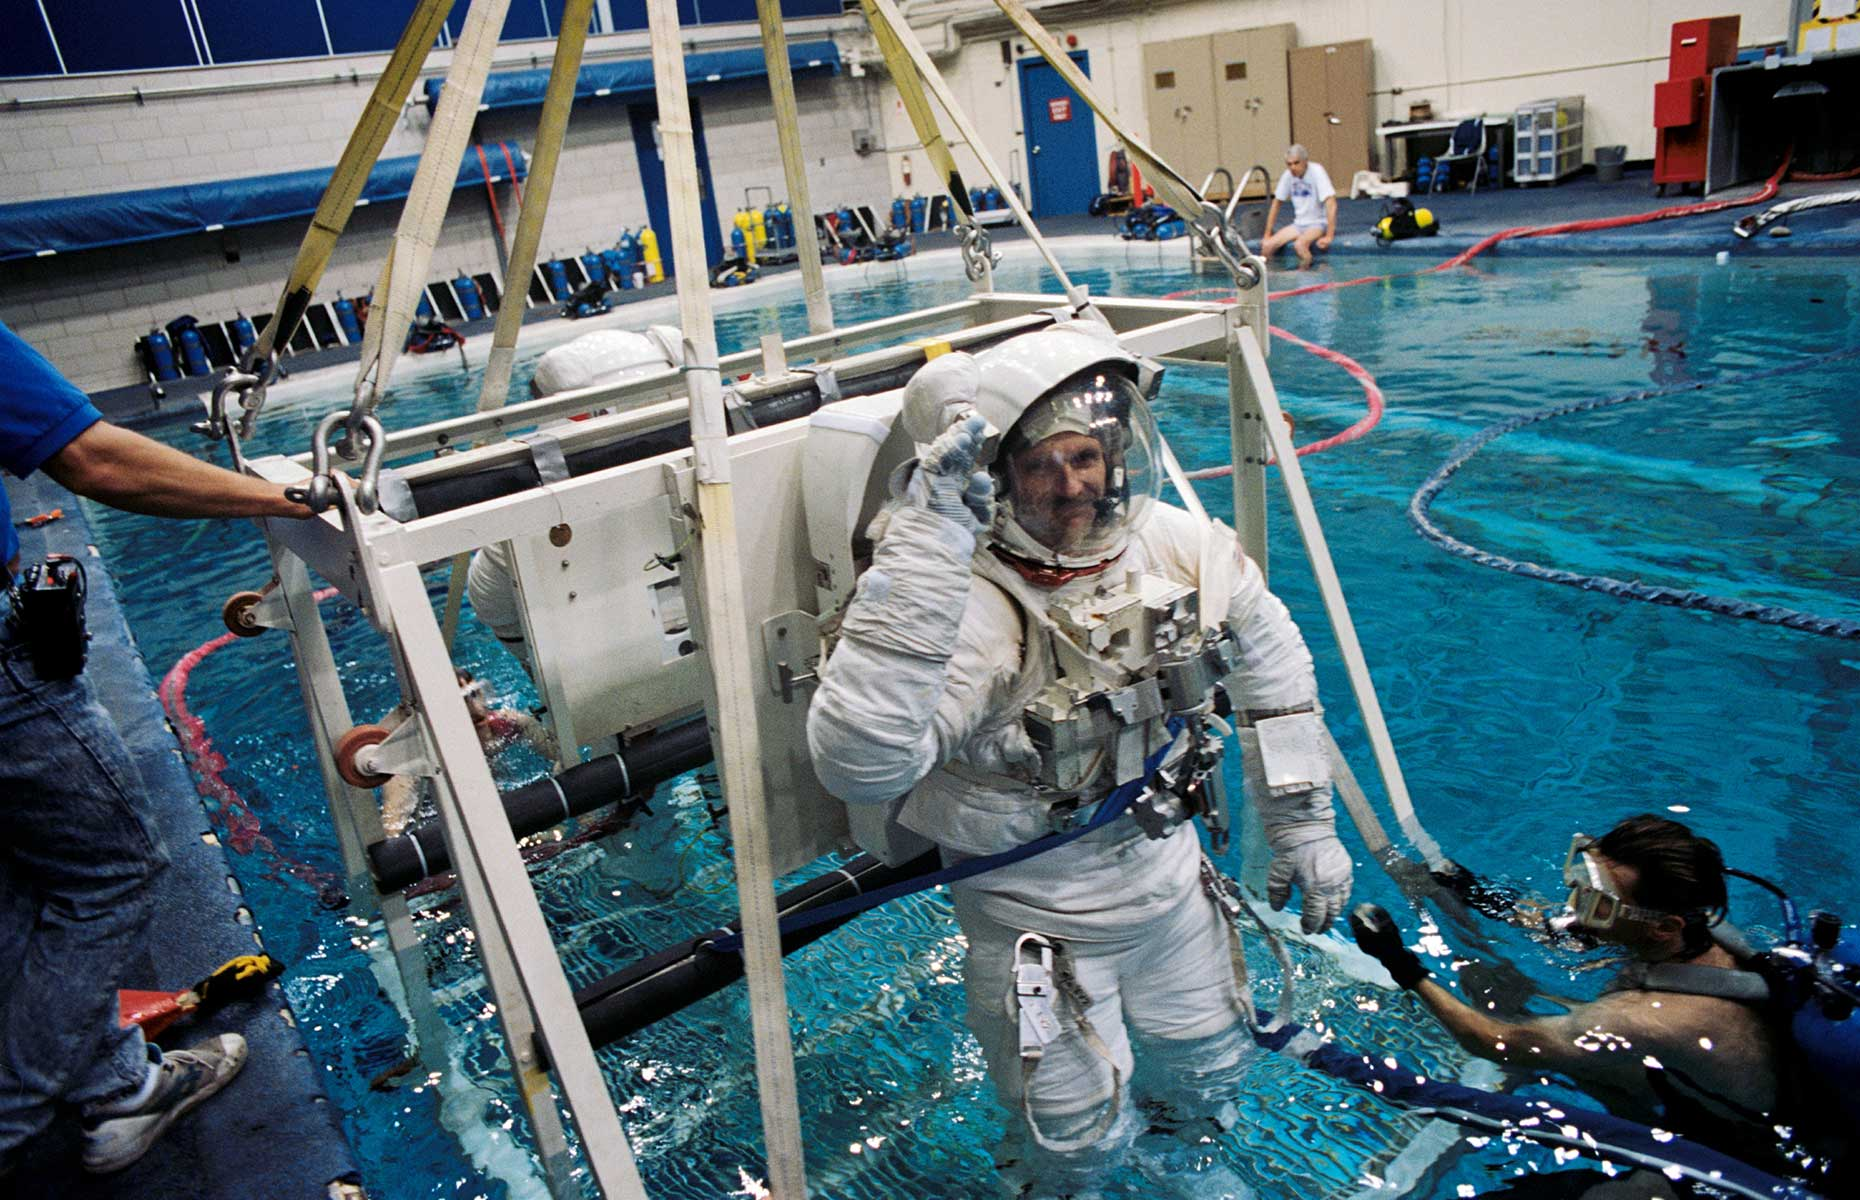 Steven L Smith during astronaut training (Image: NASA Johnson/Flickr/CC BY-NC 2.0)